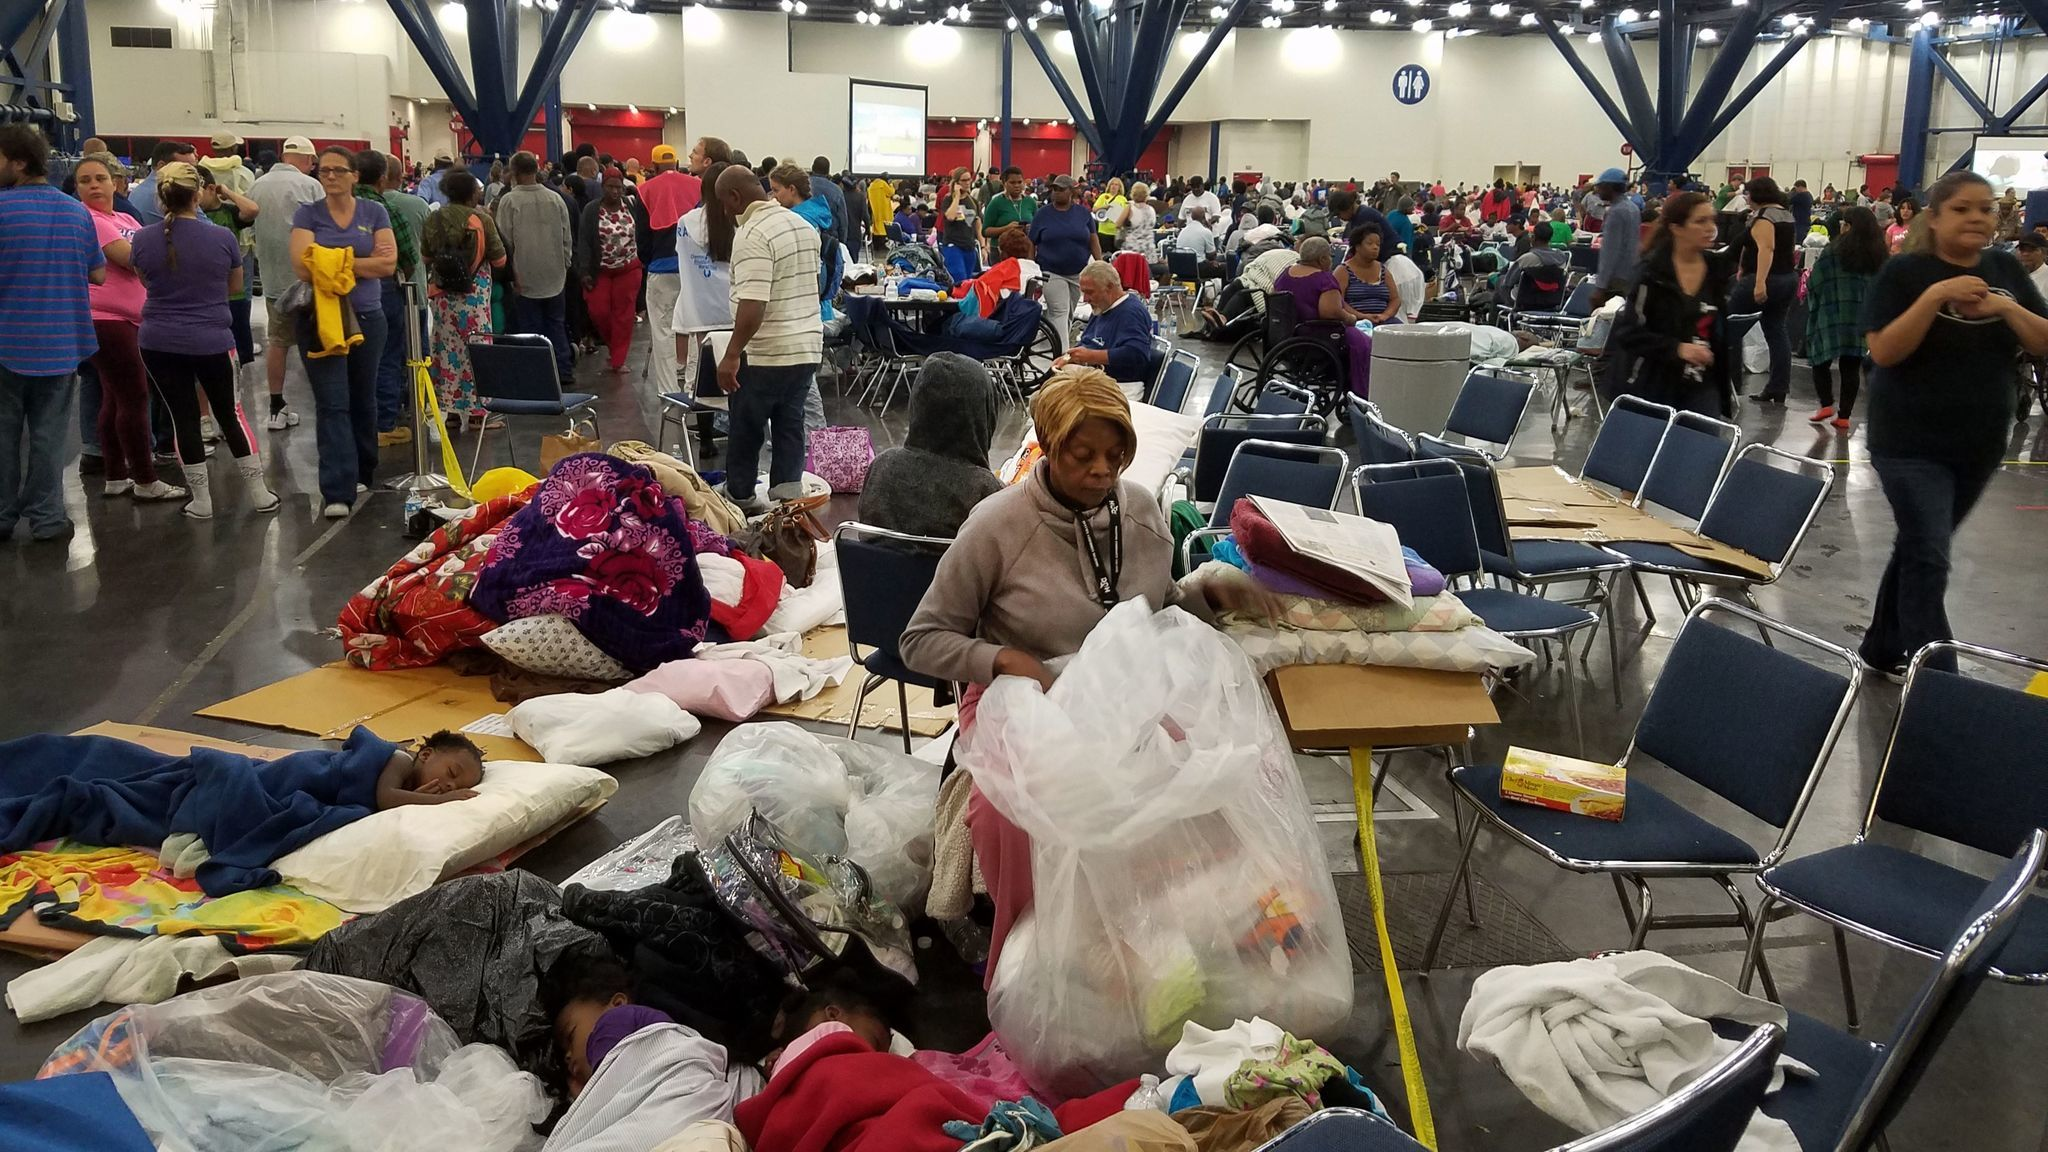 A woman sorts through clothing donated for those who have taken shelter at the George R. Brown Convention Center in Houston because of Hurricane Harvey.